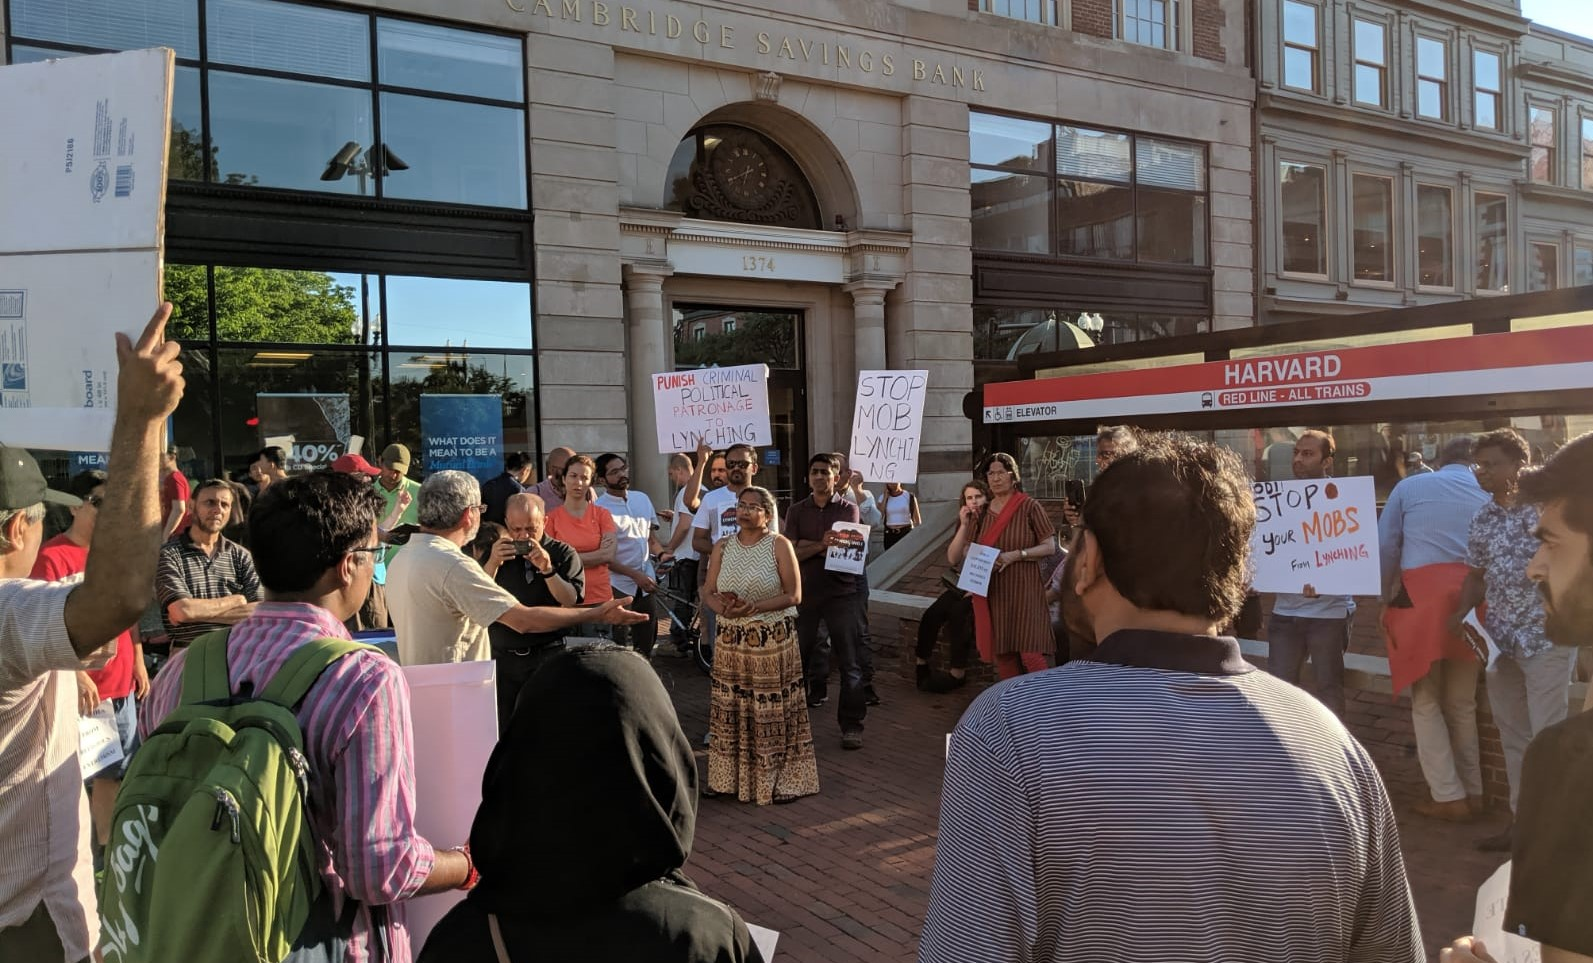 Rally at Harvard Square condemns mob lynchings in India